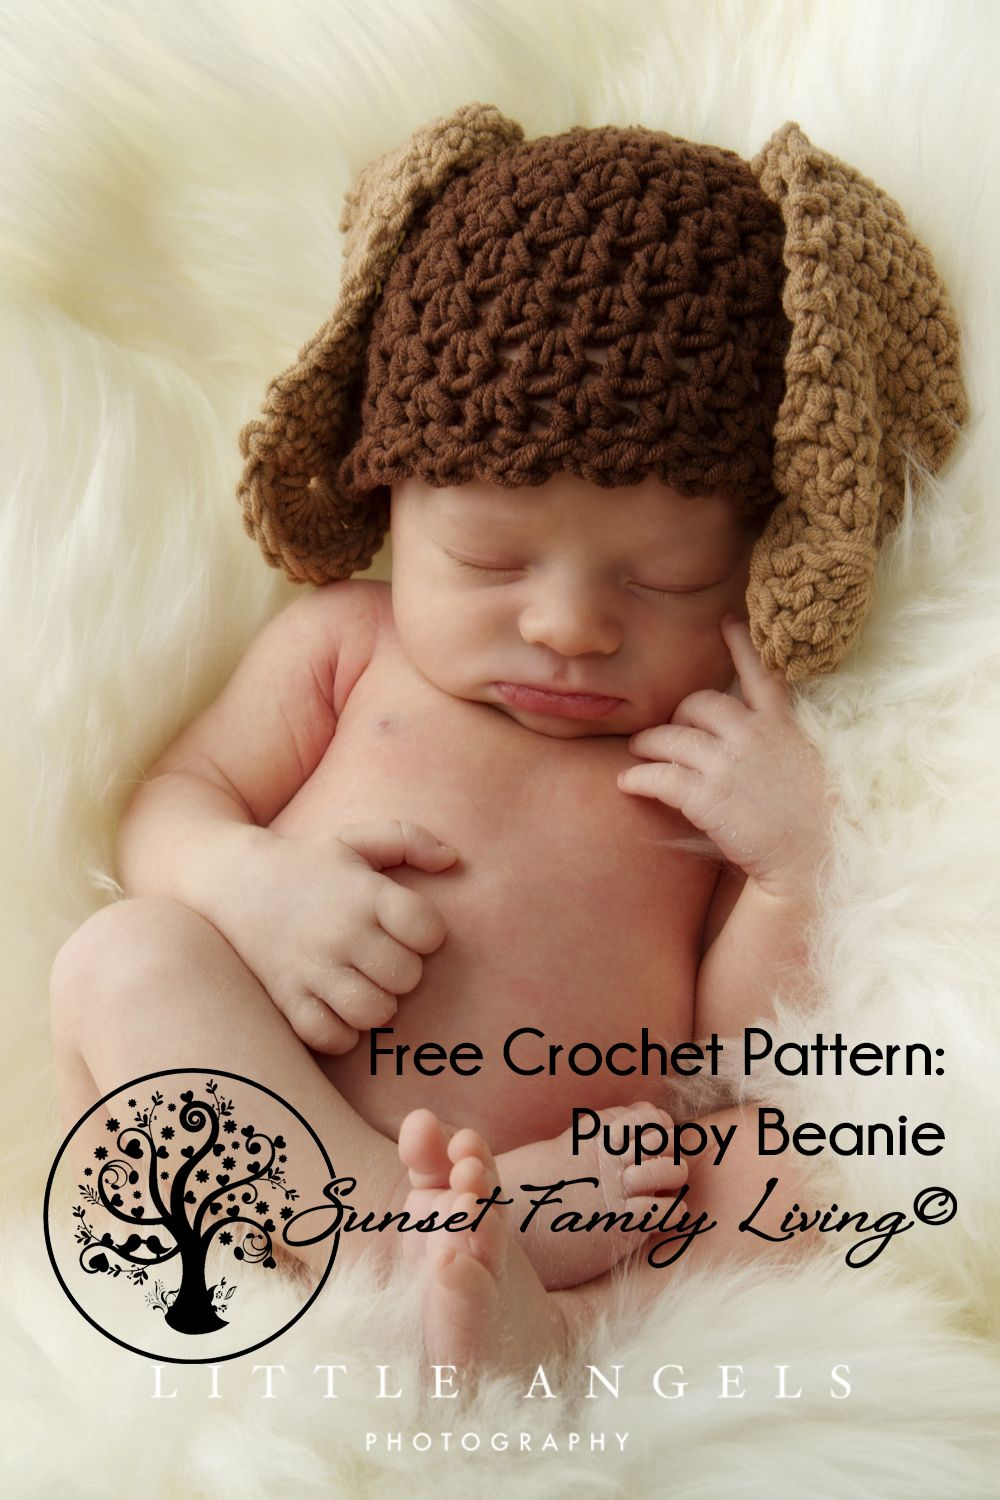 Free crochet pattern puppy hat from sunset family living free crochet pattern puppy hat from sunset family living bankloansurffo Gallery